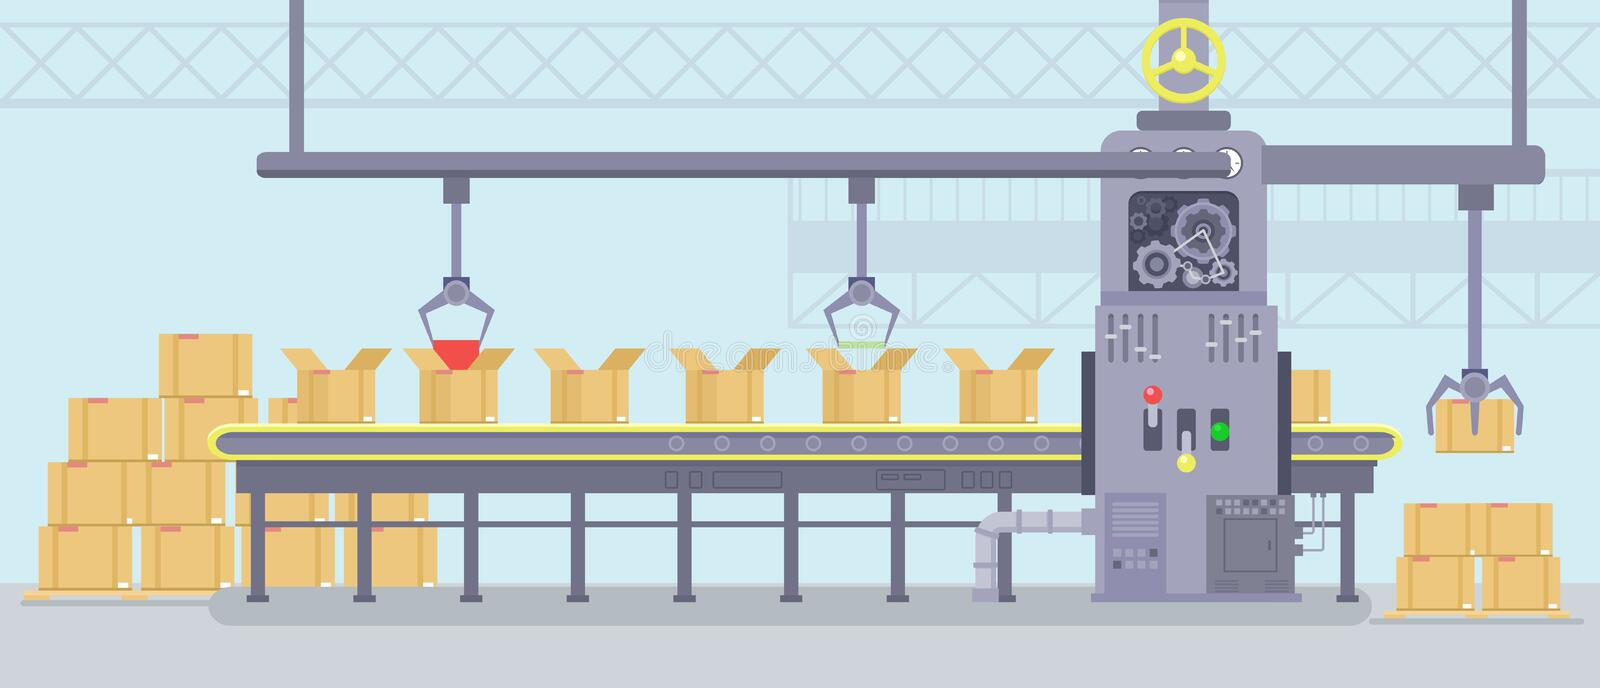 Vector illustration of manufacture interior with working smart machine with production conveyor belt. Industry concept vector illustration